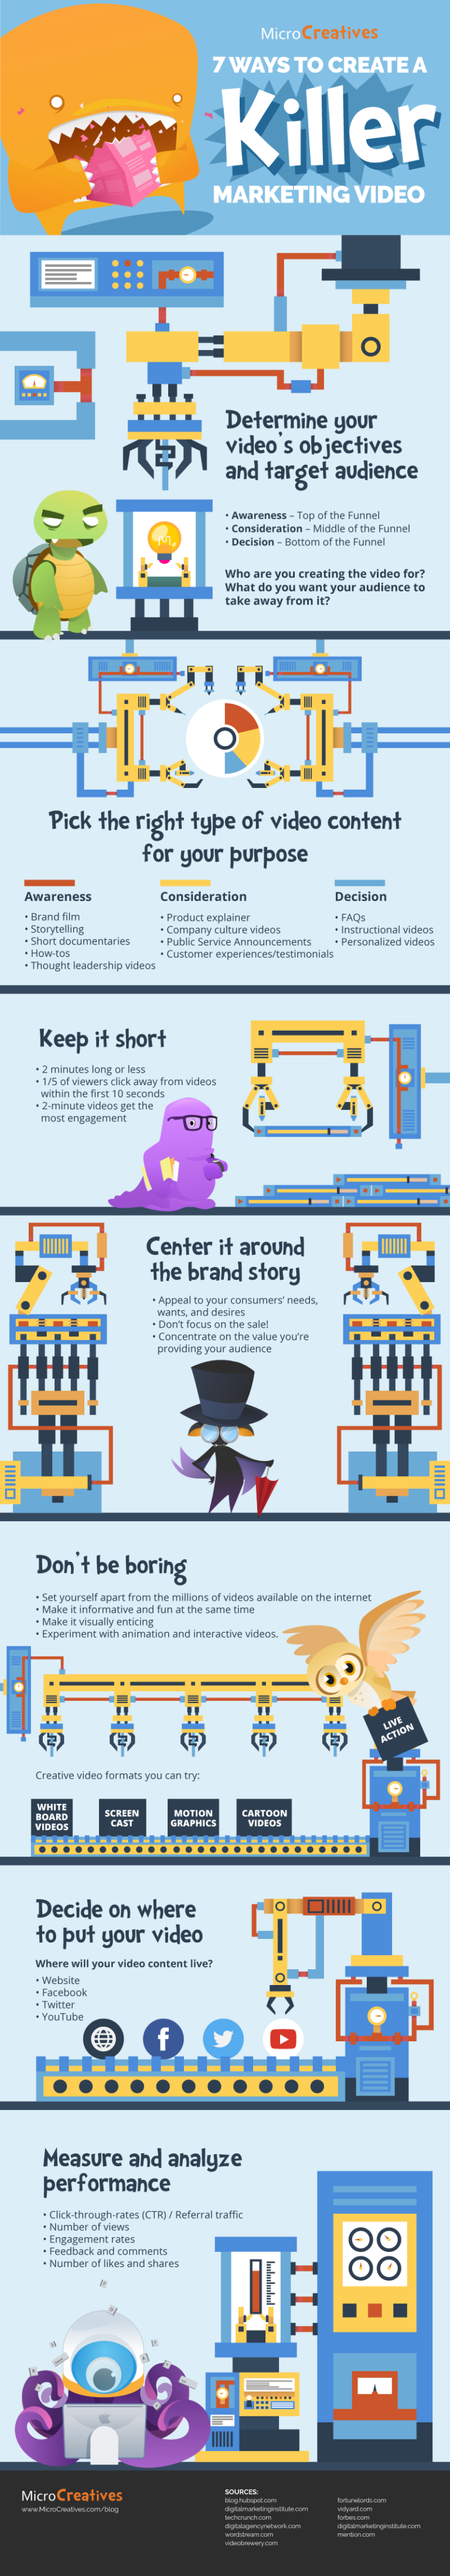 7 Ways to Create a Killer Marketing Video infographic 1